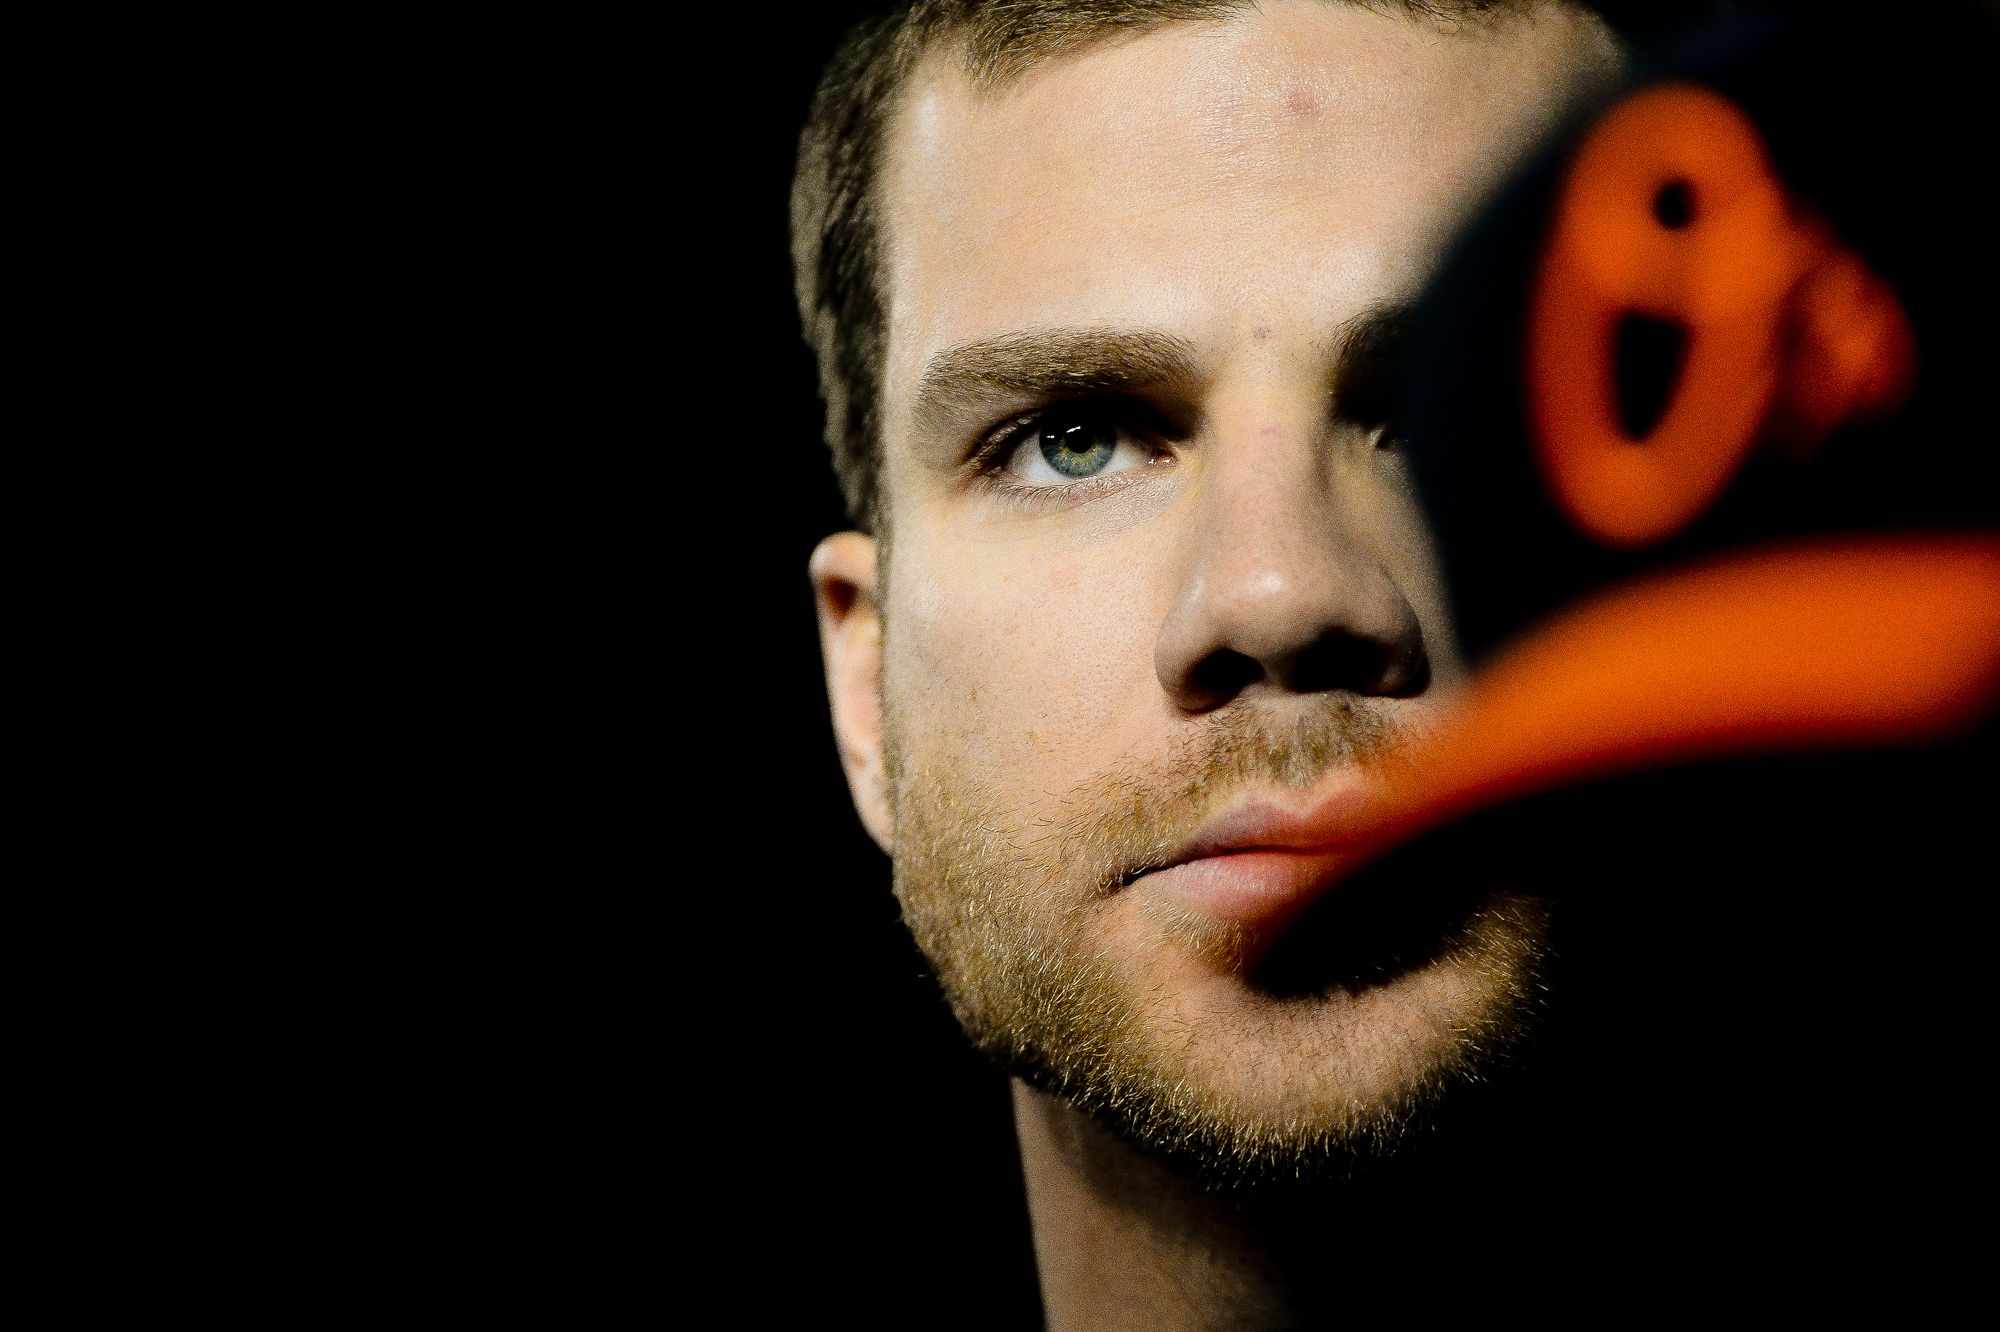 Baltimore Orioles first baseman Chris Davis stands in the dugout before preparing for an at bat in the first inning of a home game on April 25, 2014 in Baltimore, Md.